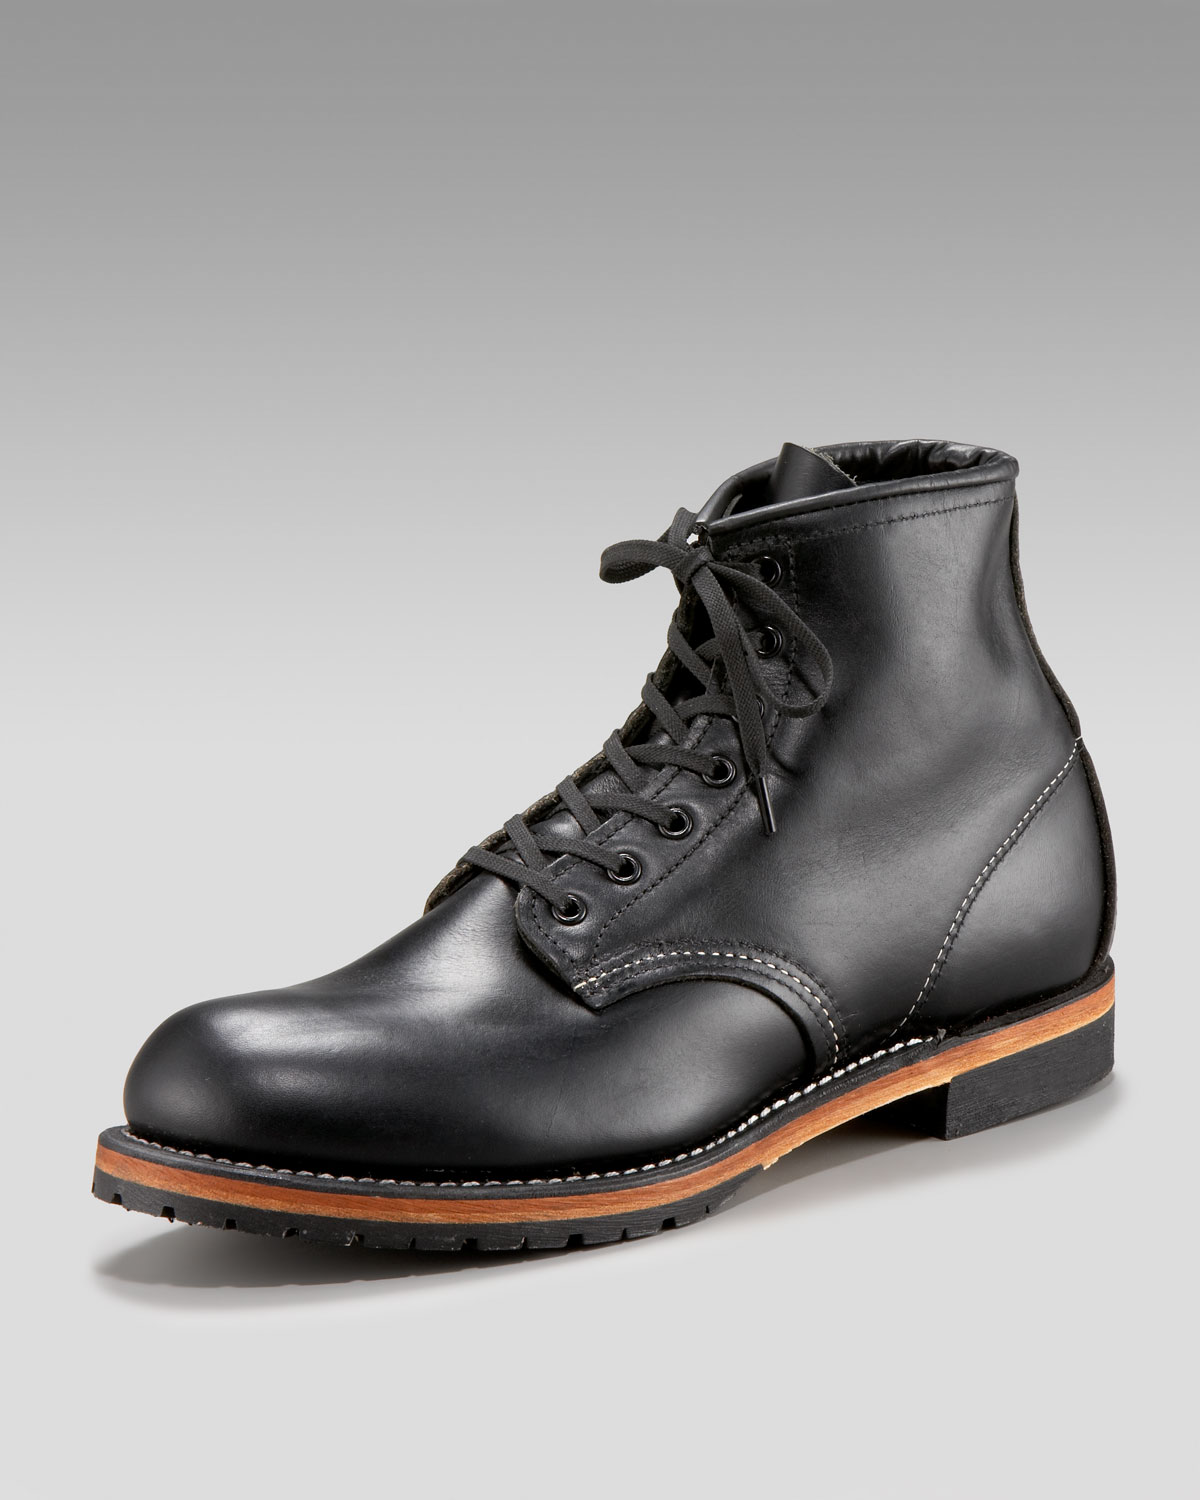 Red Wing Beckman Boots - Cr Boot